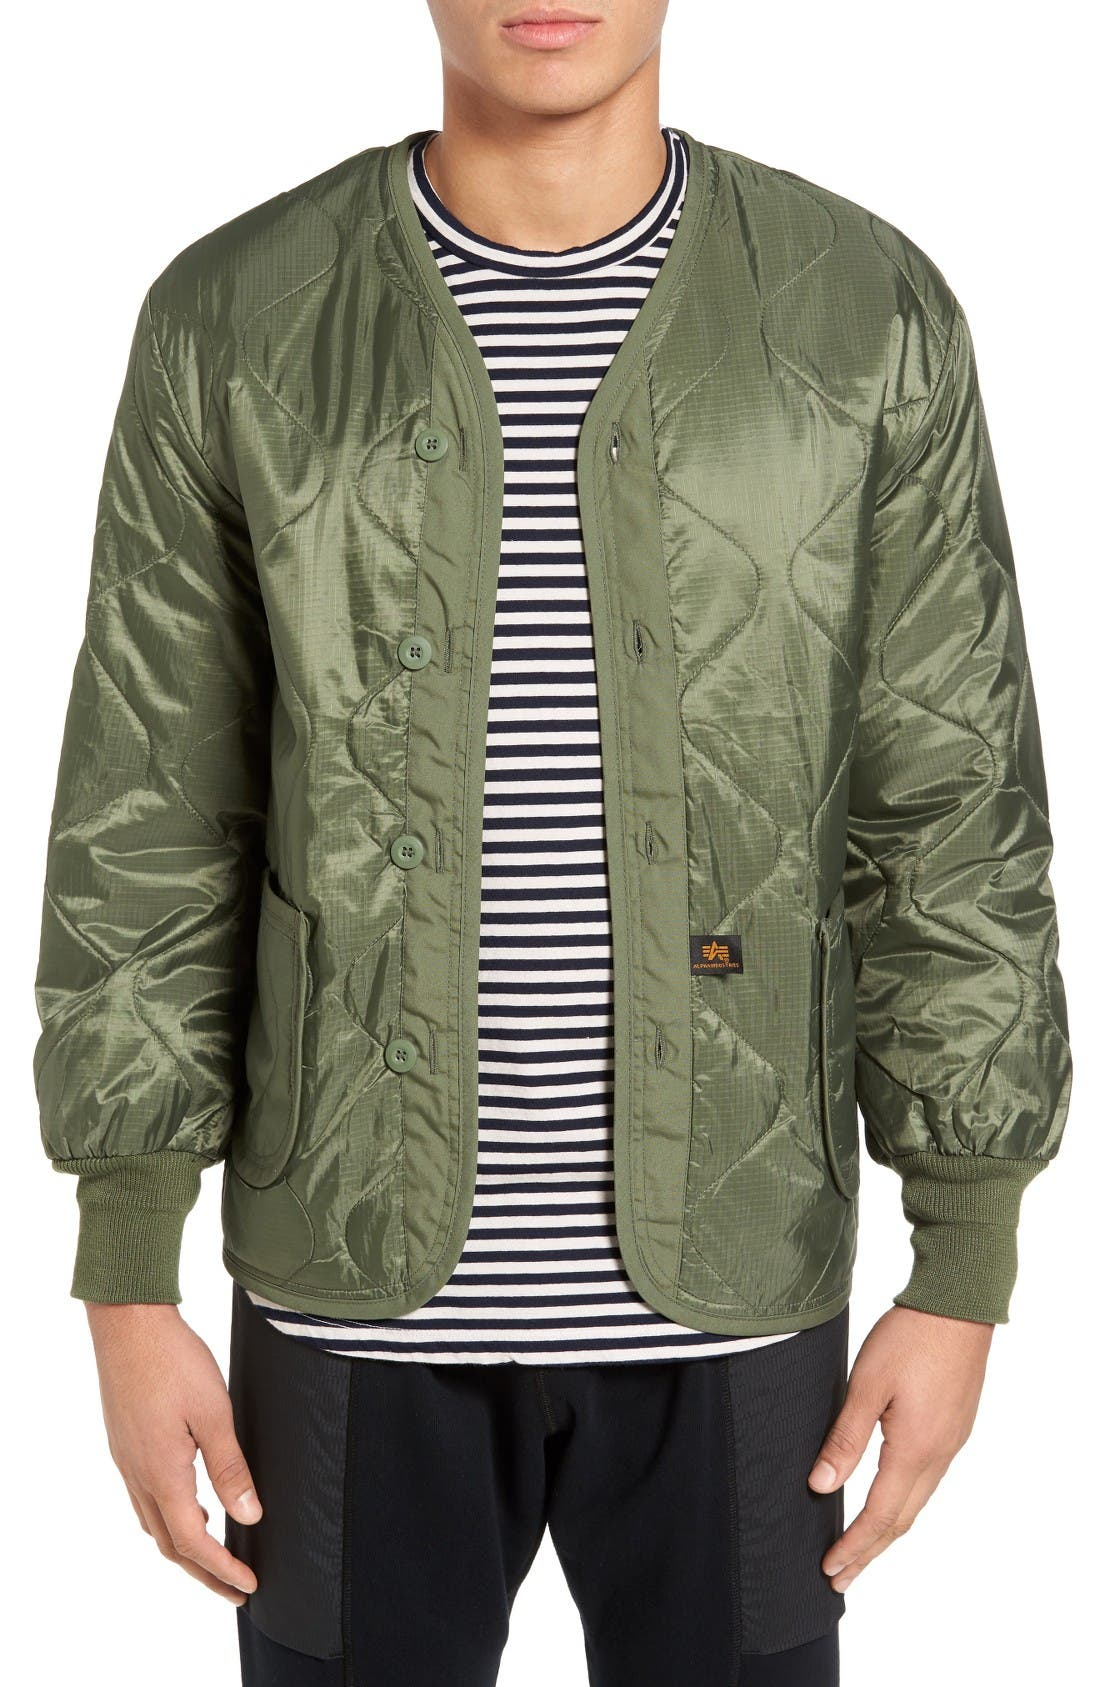 ALPHA INDUSTRIES ALS/92 Liner Jacket